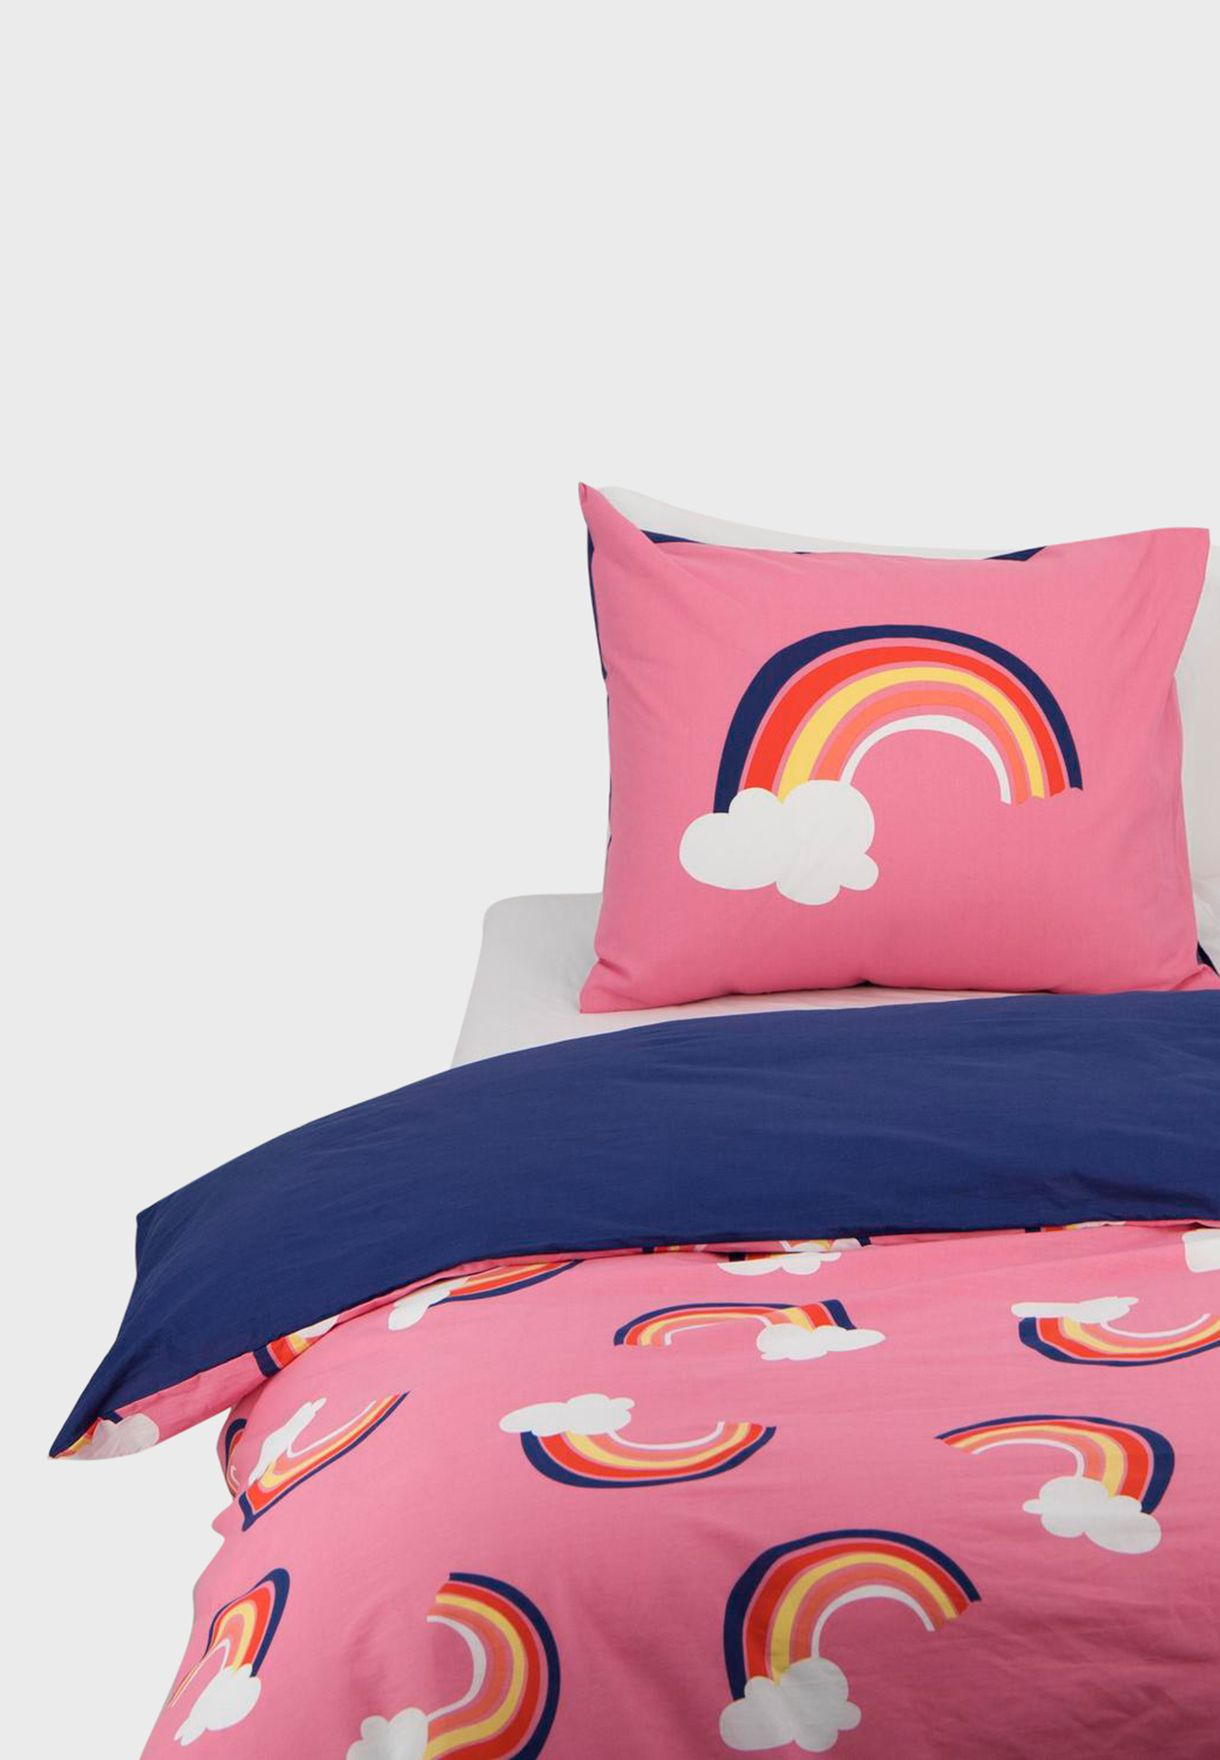 Kids Rainbow Printed Bedding Set 140x200cm